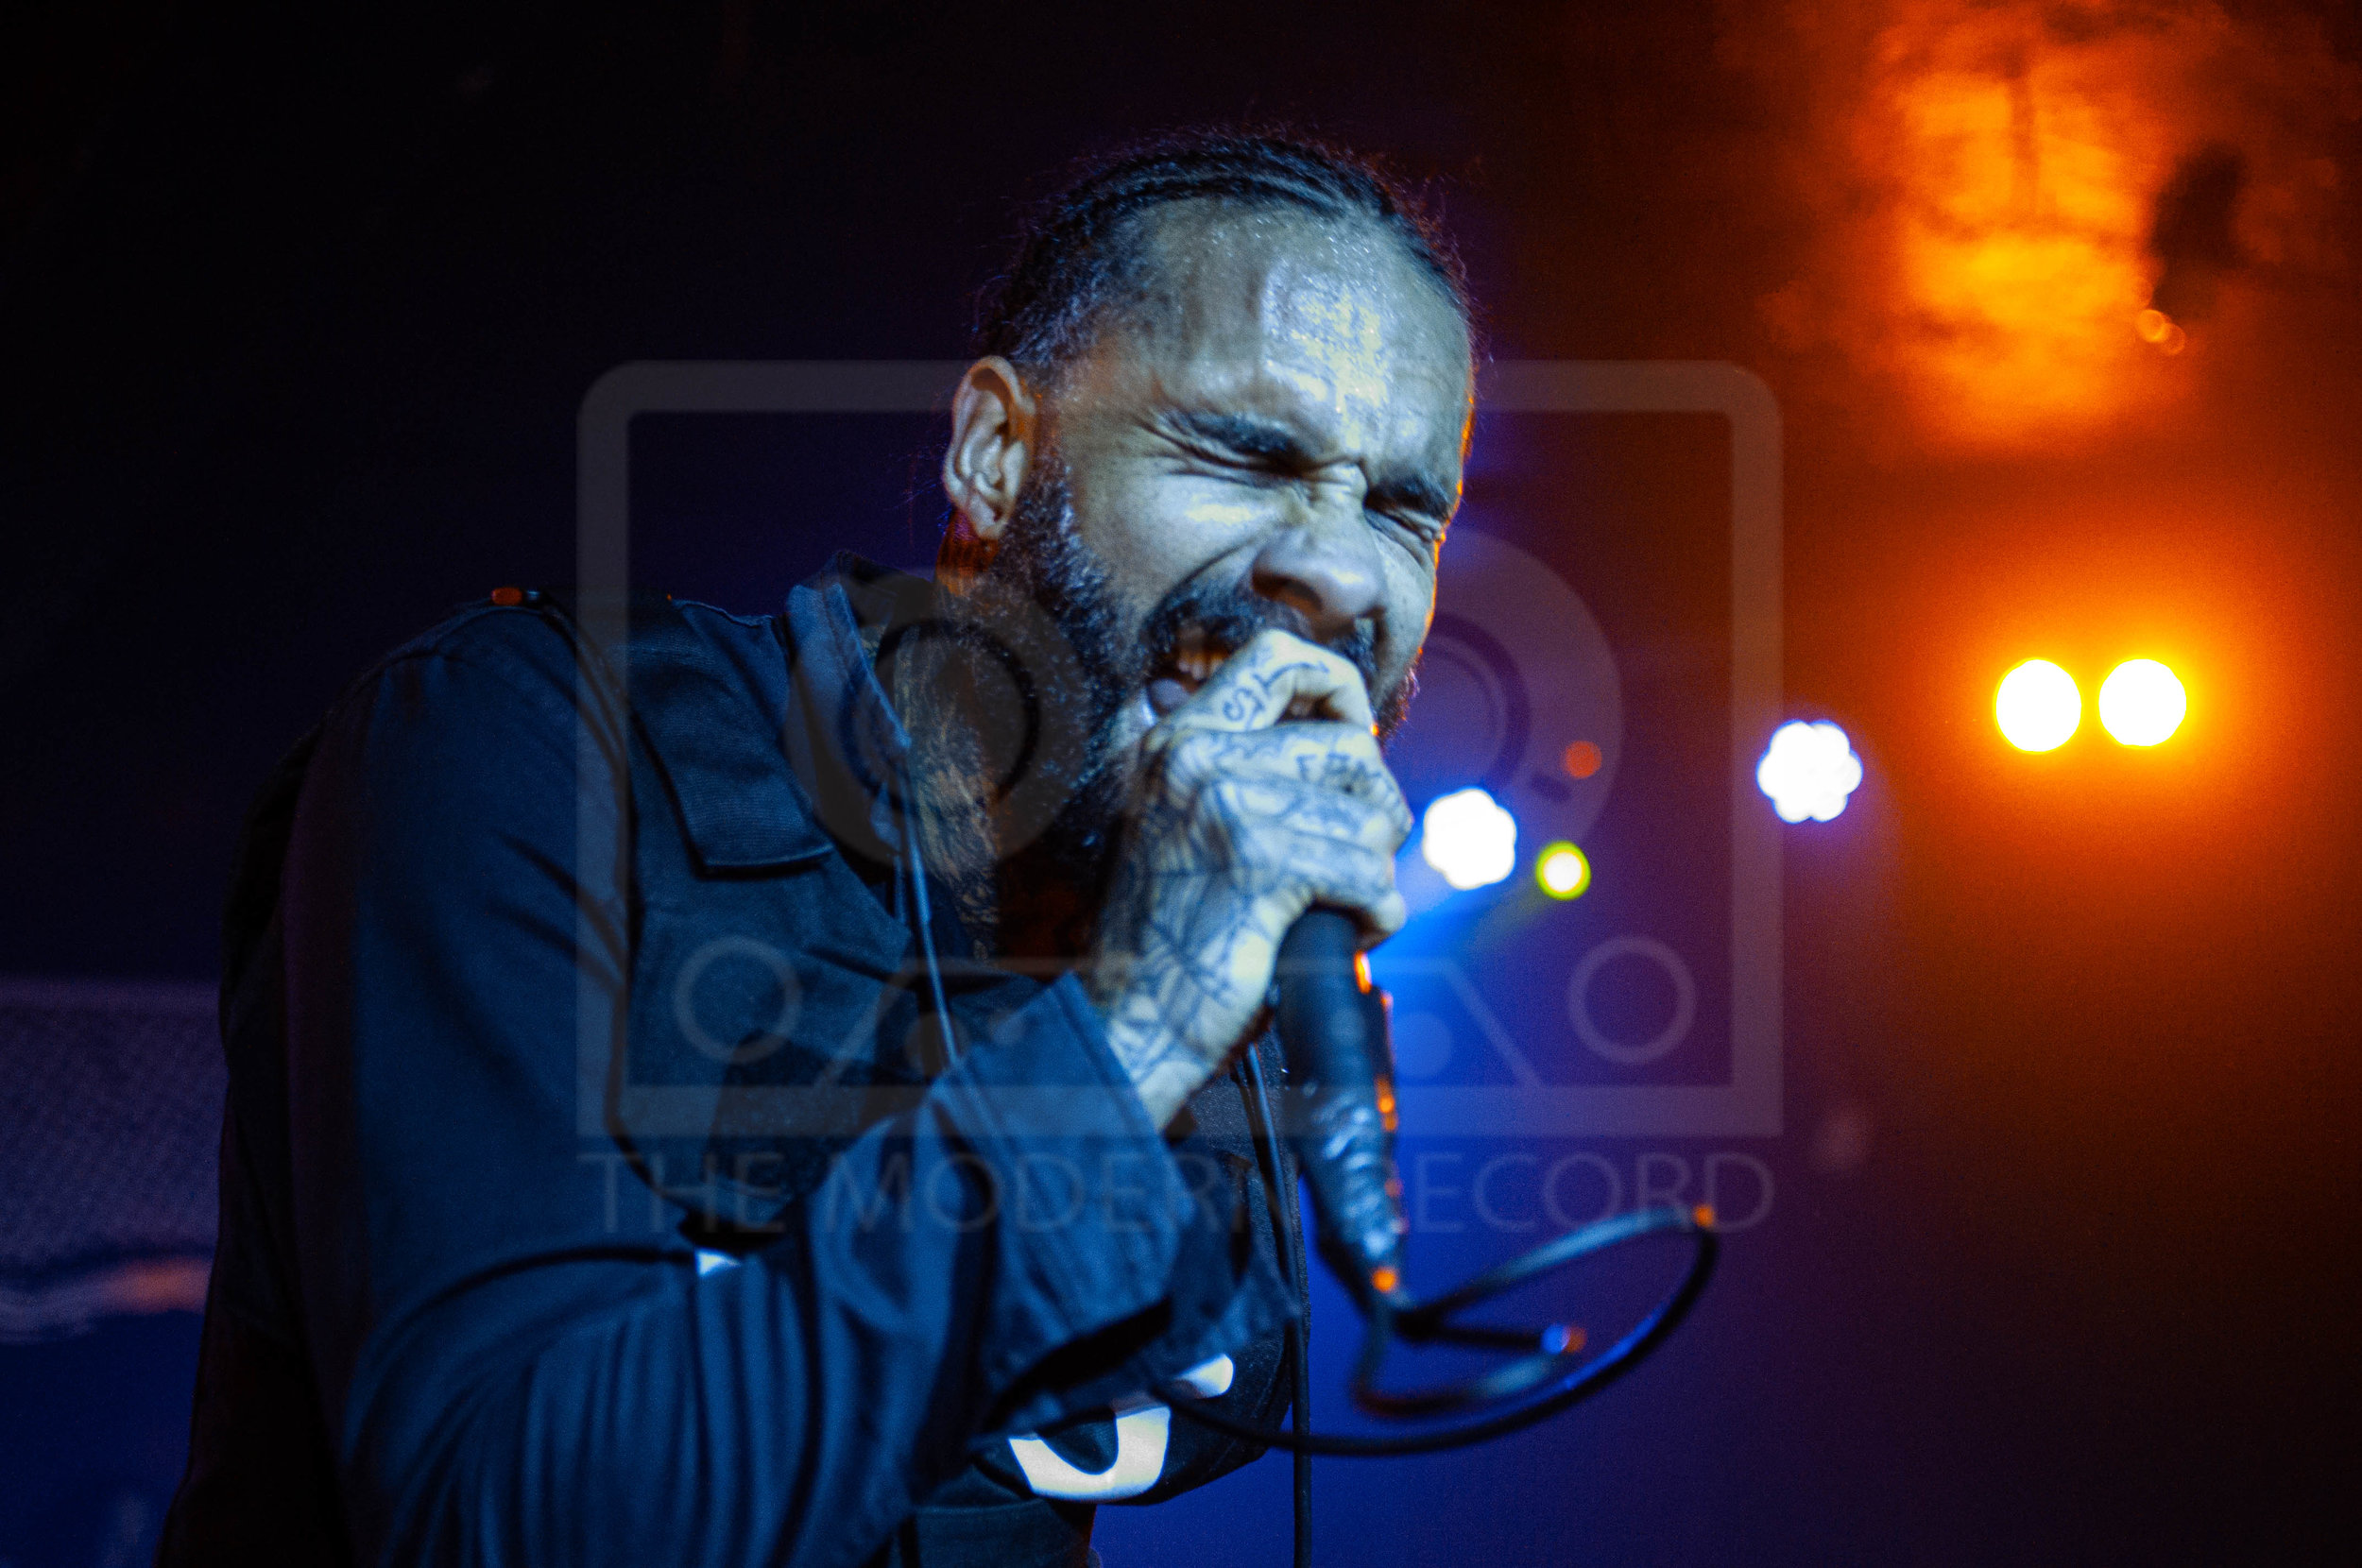 FEVER 333 PERFORMING AT GLASGOW'S CATHOUSE - 17.06.2019  PICTURE BY: CHRIS YOUNG AT CWY PHOTOGRPAHY